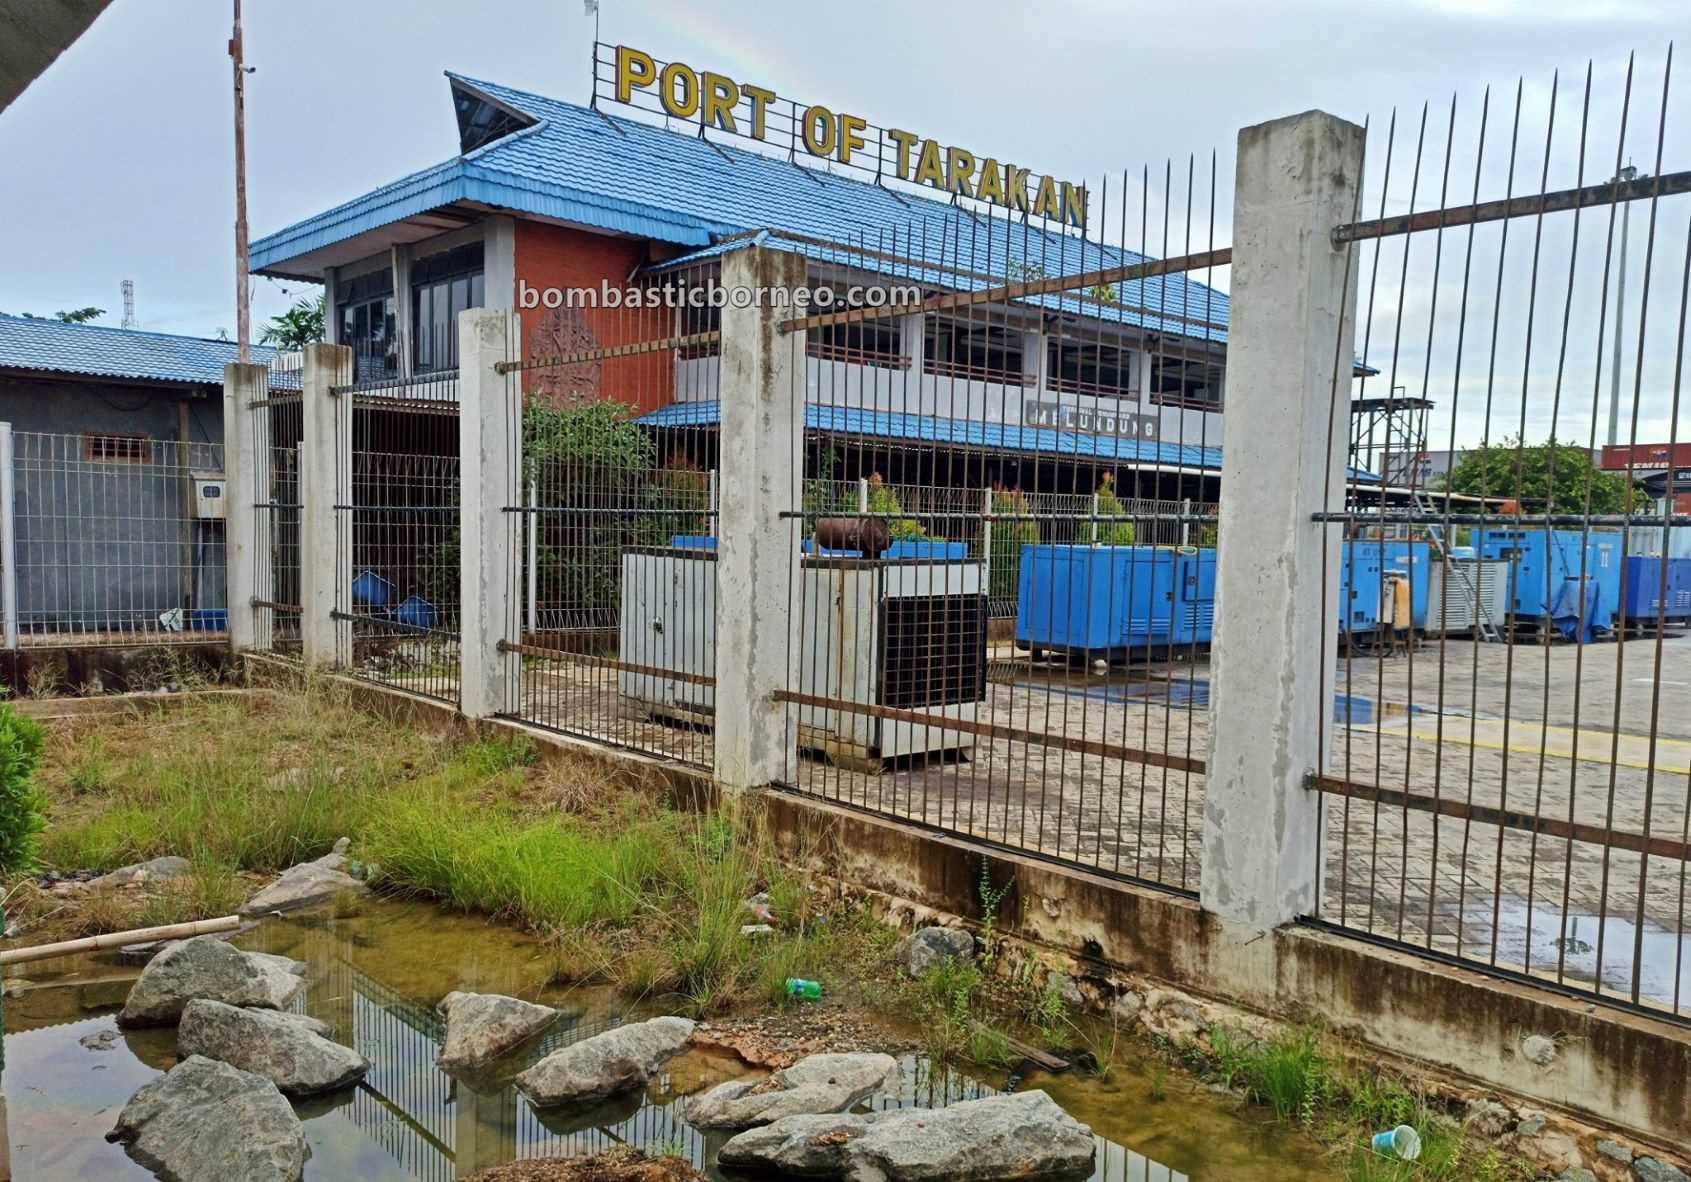 speed boat, Ferry terminal, Express Boat Ride, backpackers, international, Kaltara, Kapal Besar, MV Tawindo, Pelabuhan Malundung, wharf, Tourism, Transportation, Border crossing, 跨境婆罗洲北加里曼丹, 印尼打拉根岛